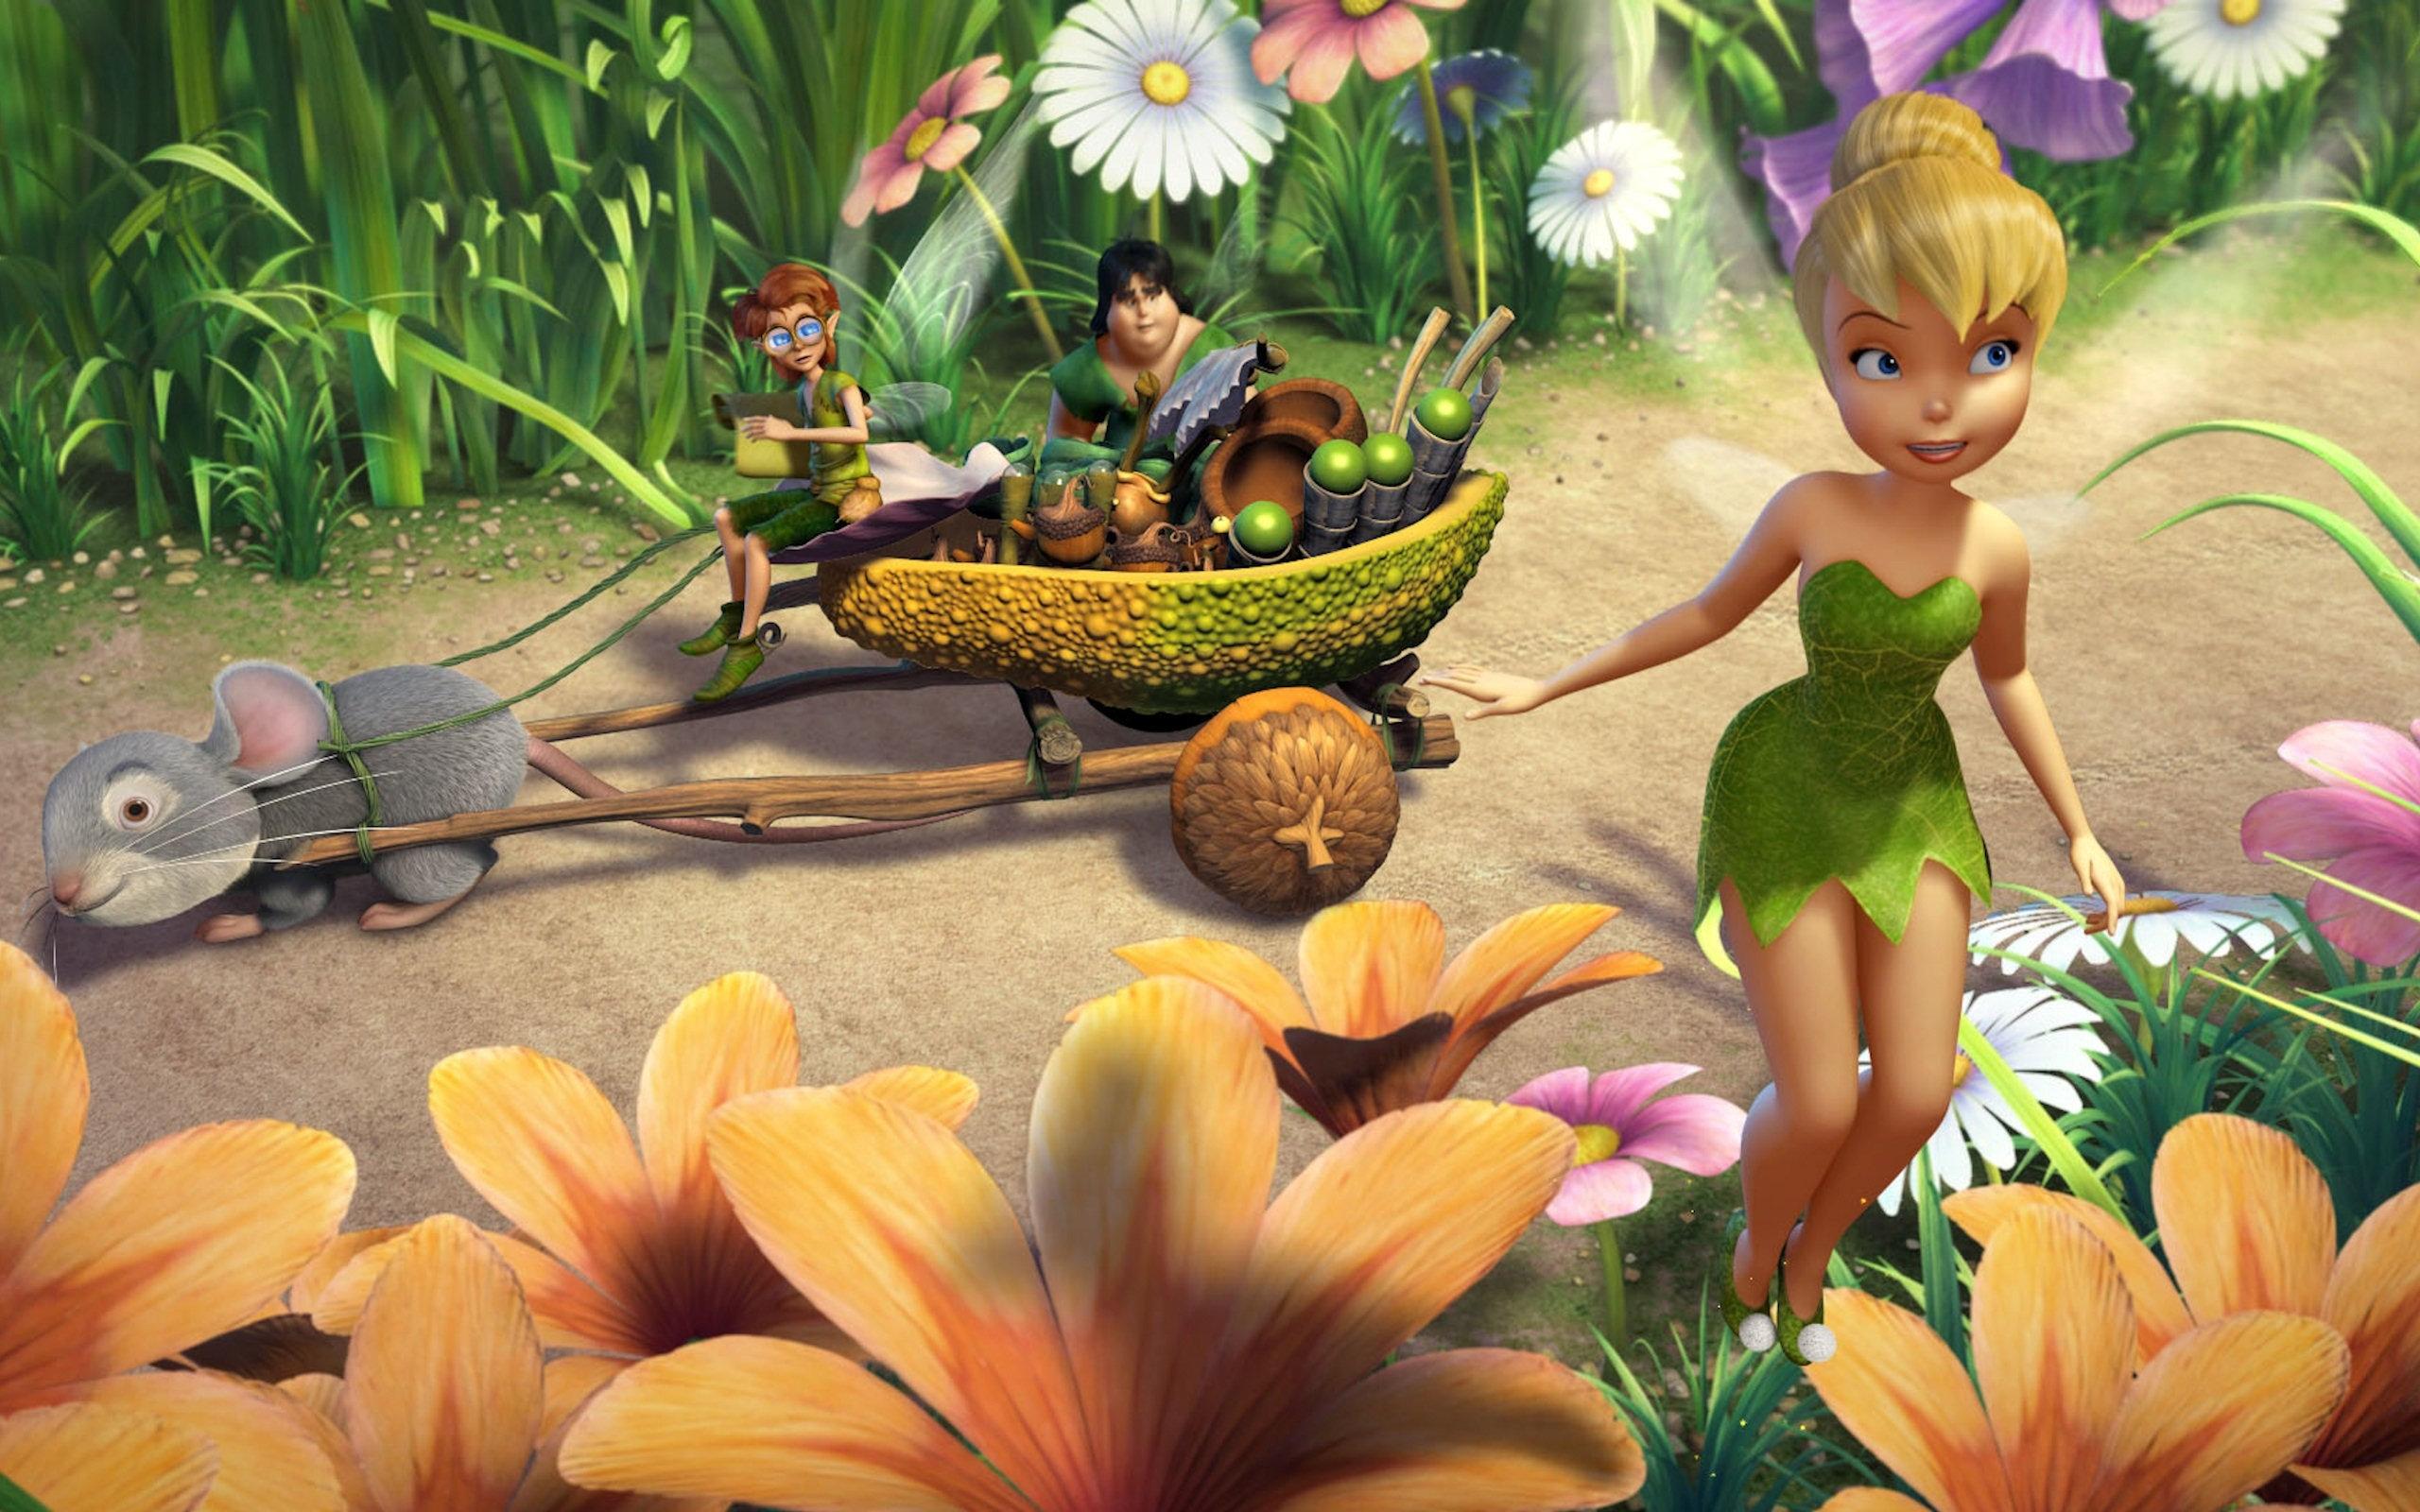 2560x1600 Disney Tinkerbell Images Download.